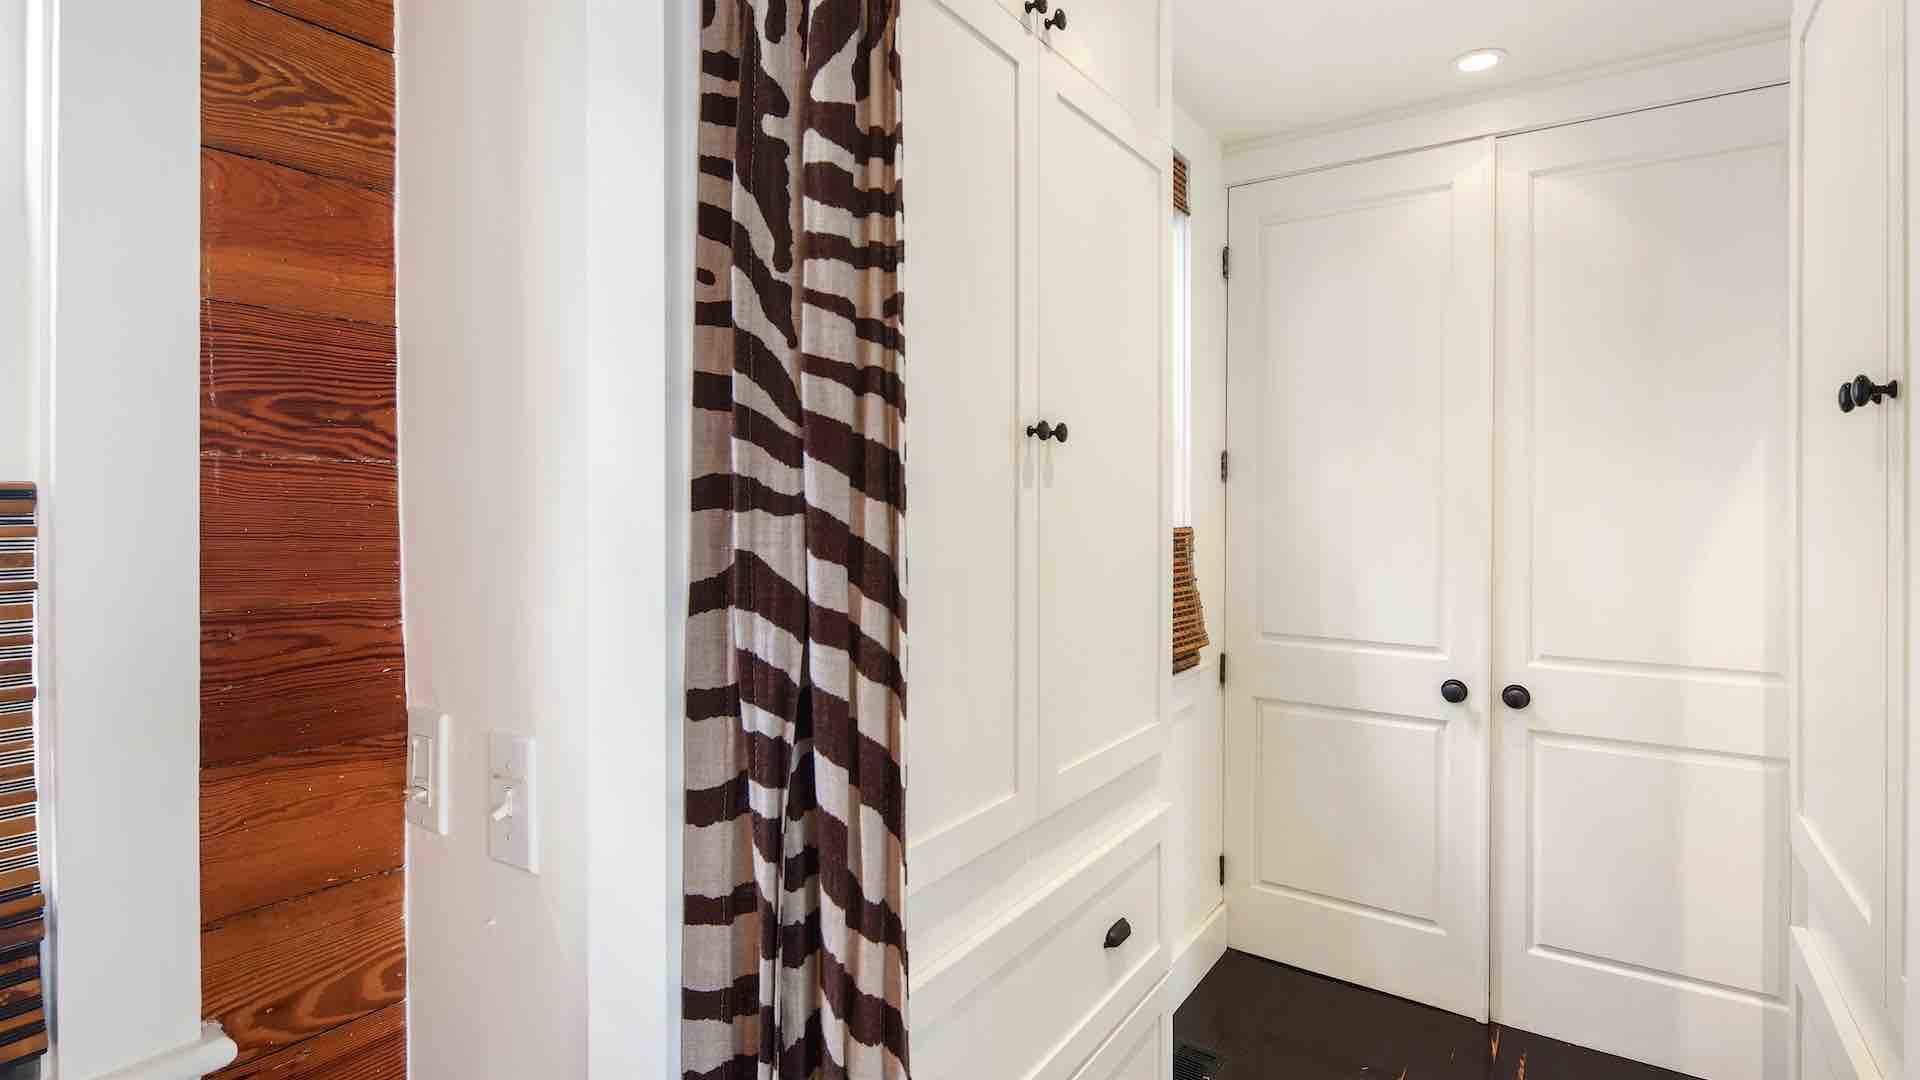 The master bedroom has a large walk-in closet...